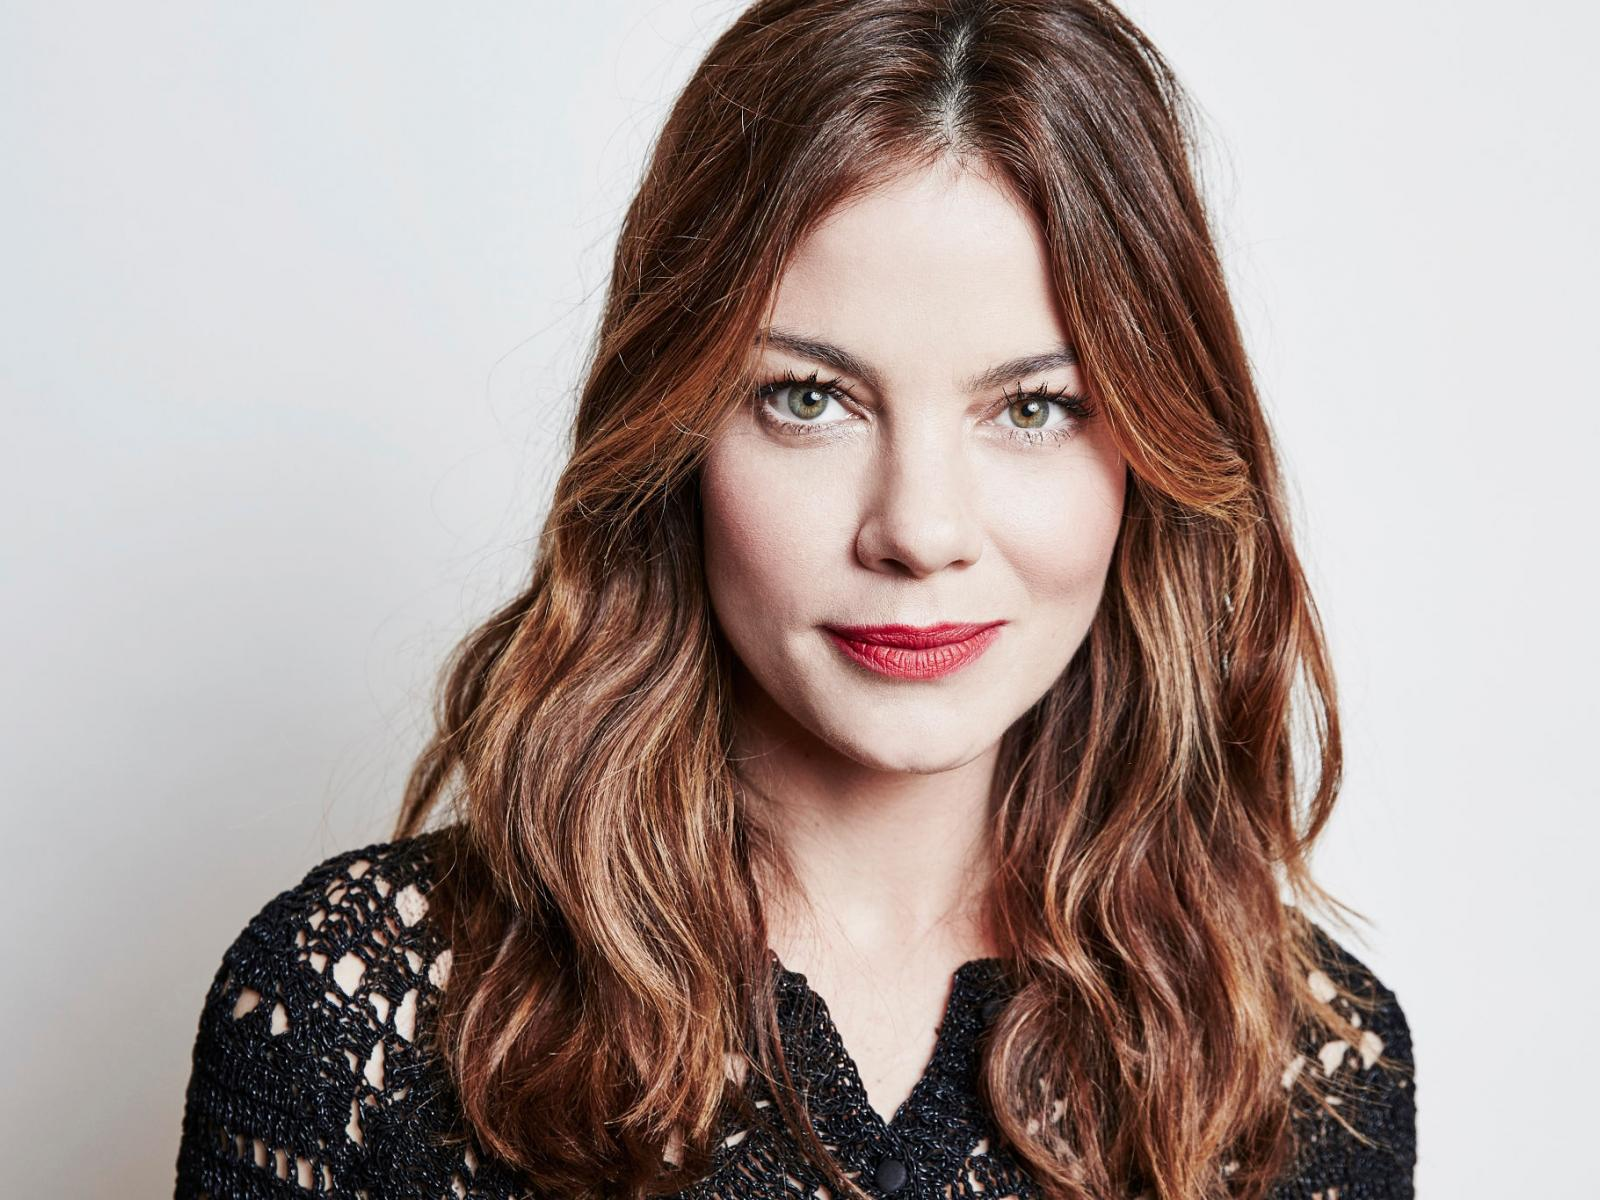 1600x1200 - Michelle Monaghan Wallpapers 28